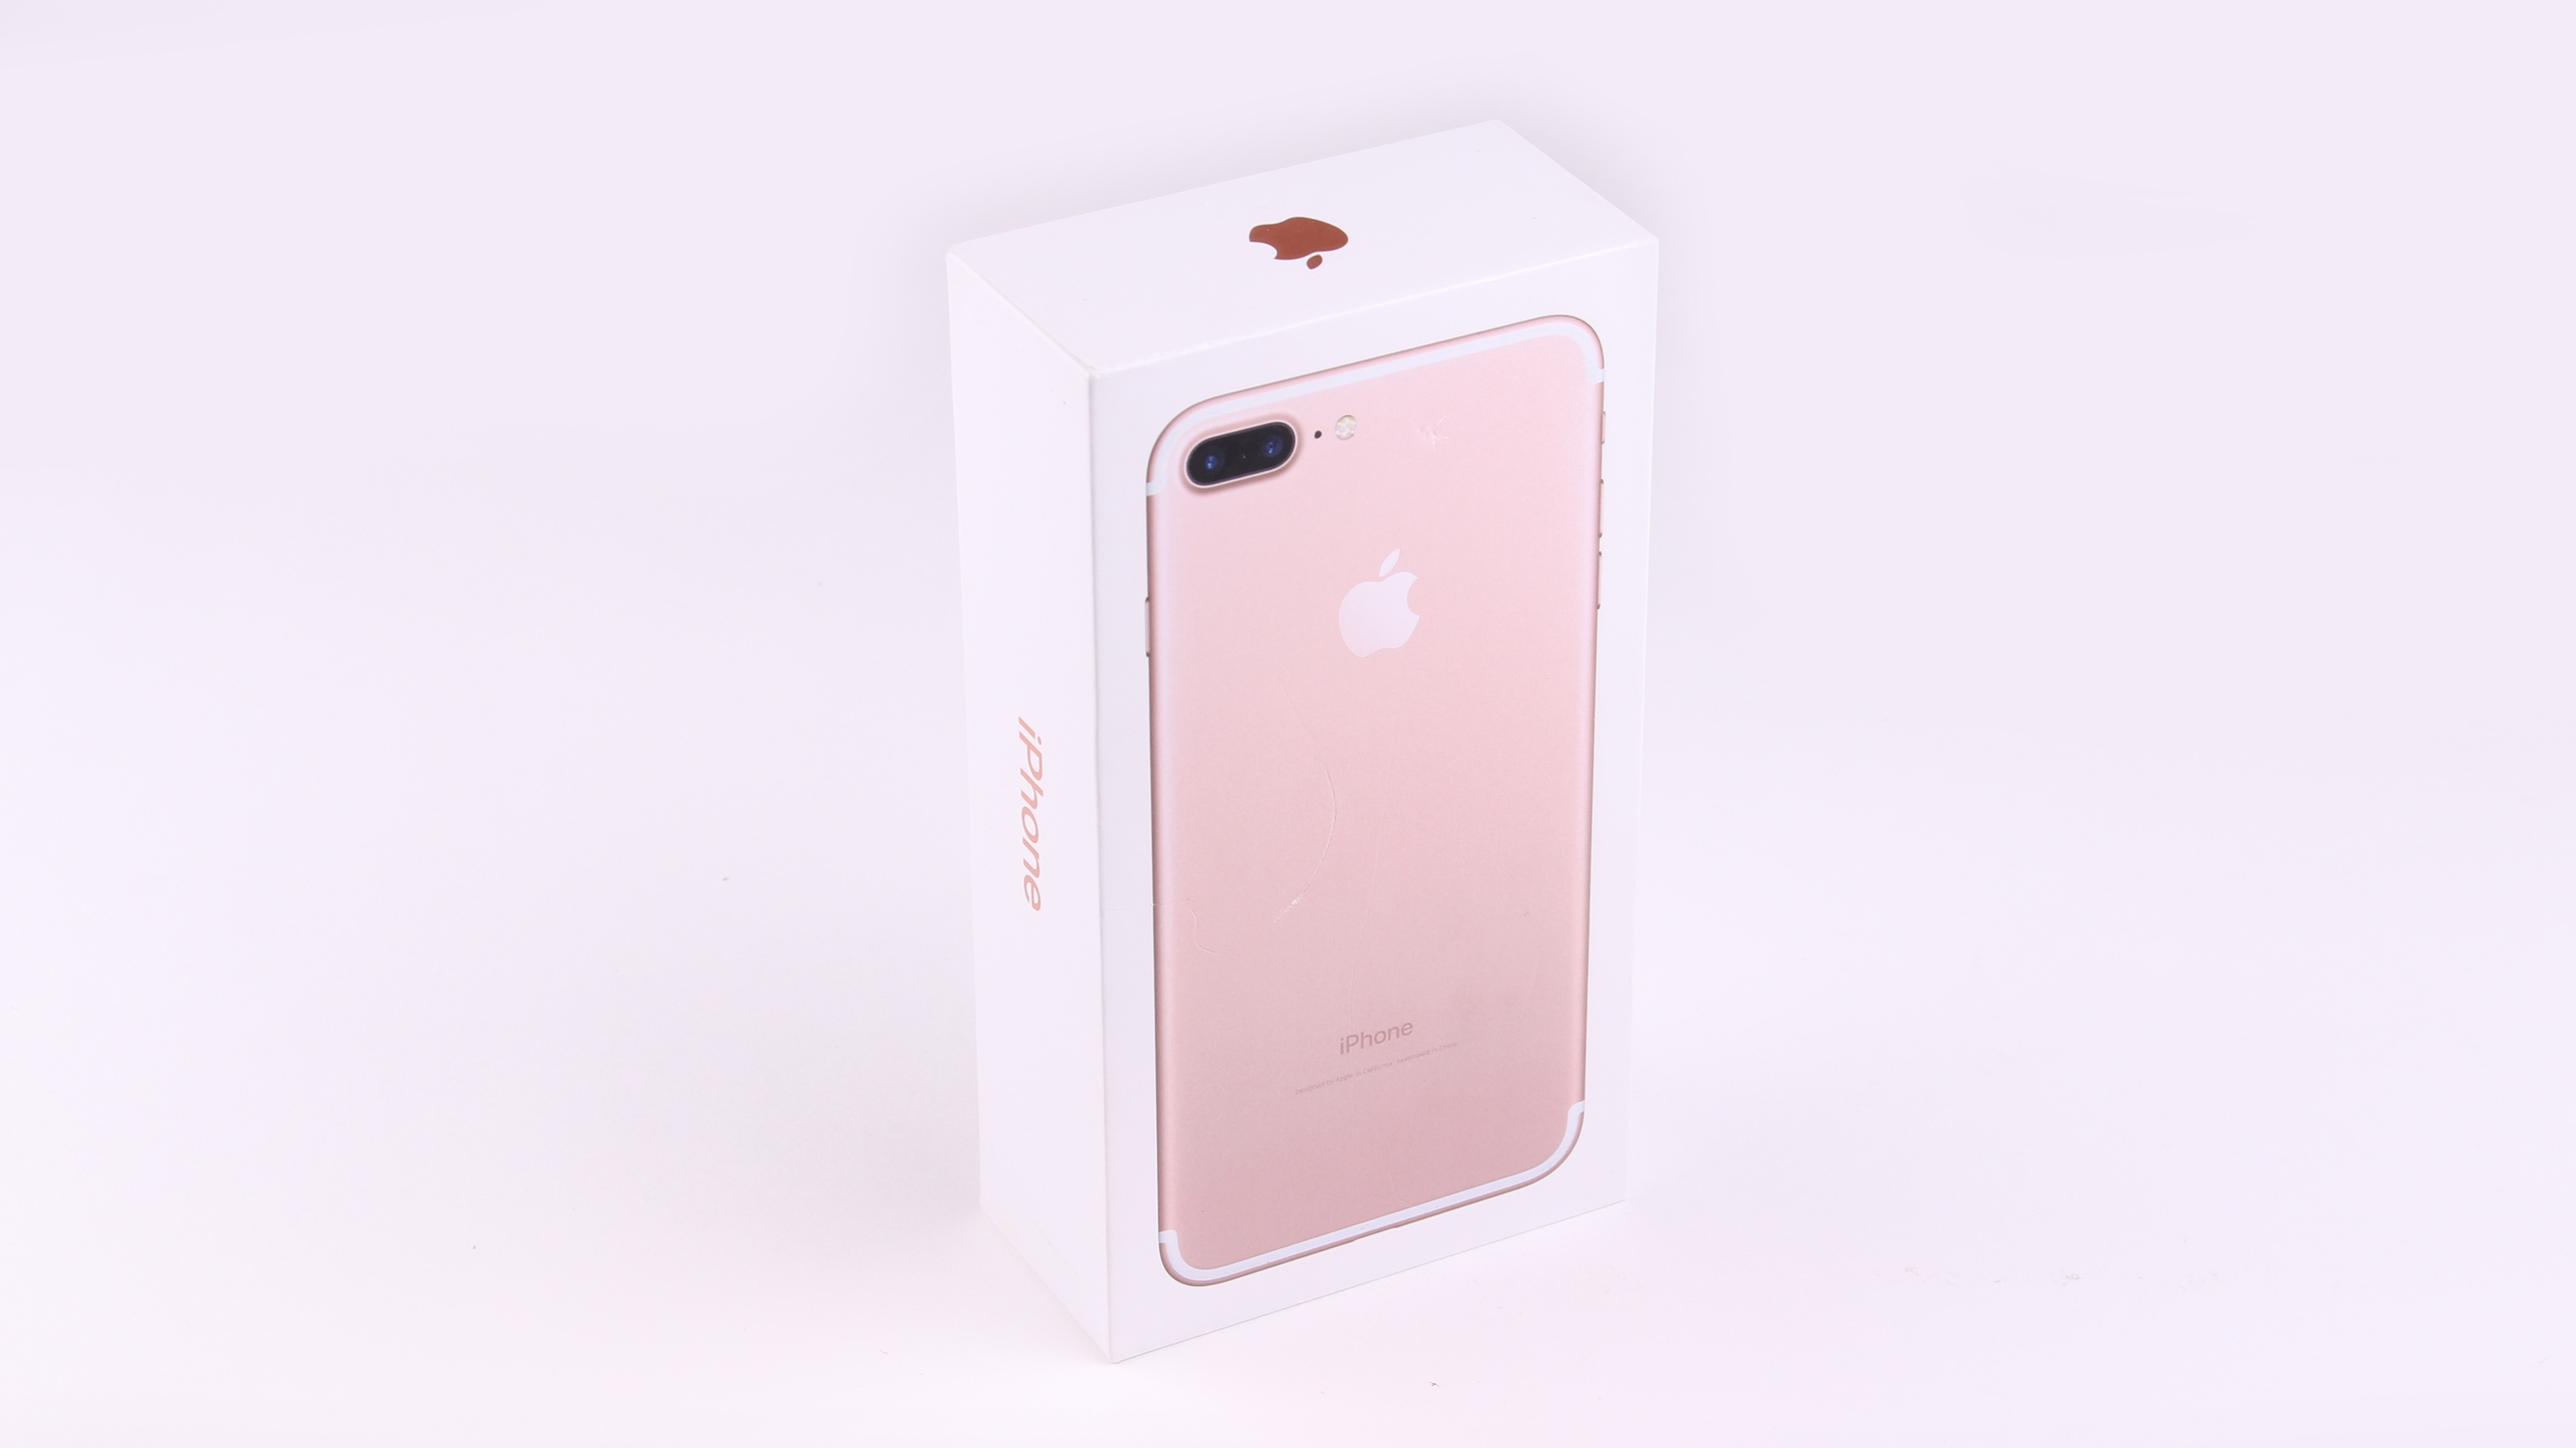 Iphone 7 Plus 128gb Rose Gold Duct Tape Workshop Se Rosegold Next